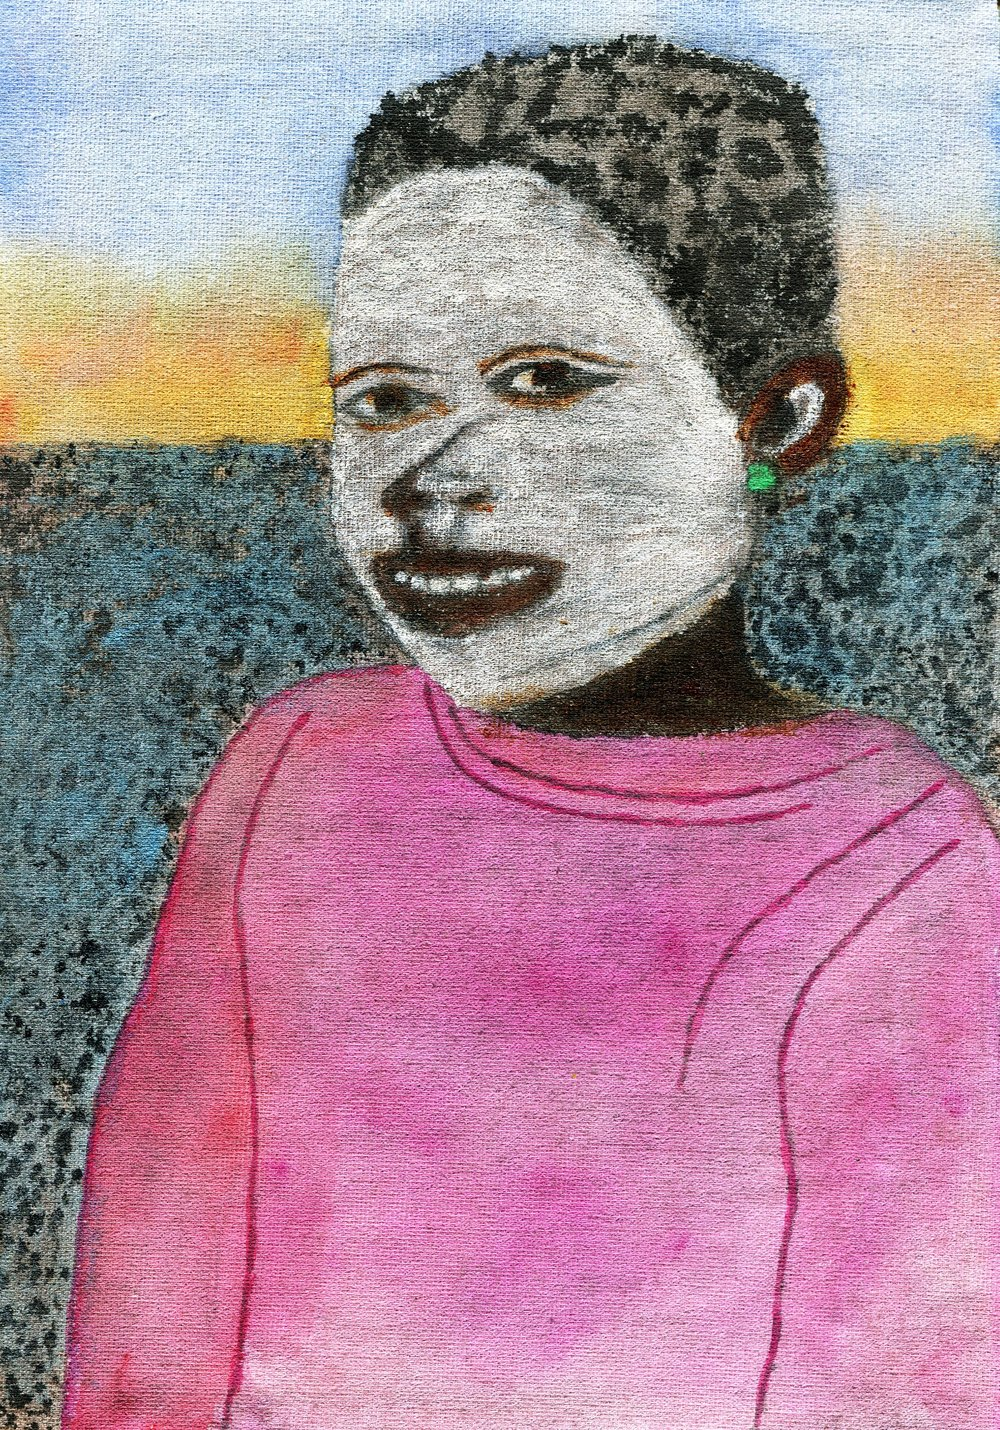 73B CHRIS LAKE, XHOSA MAIDEN, ACRYLIC & WATERCOLOUR ON CANVAS